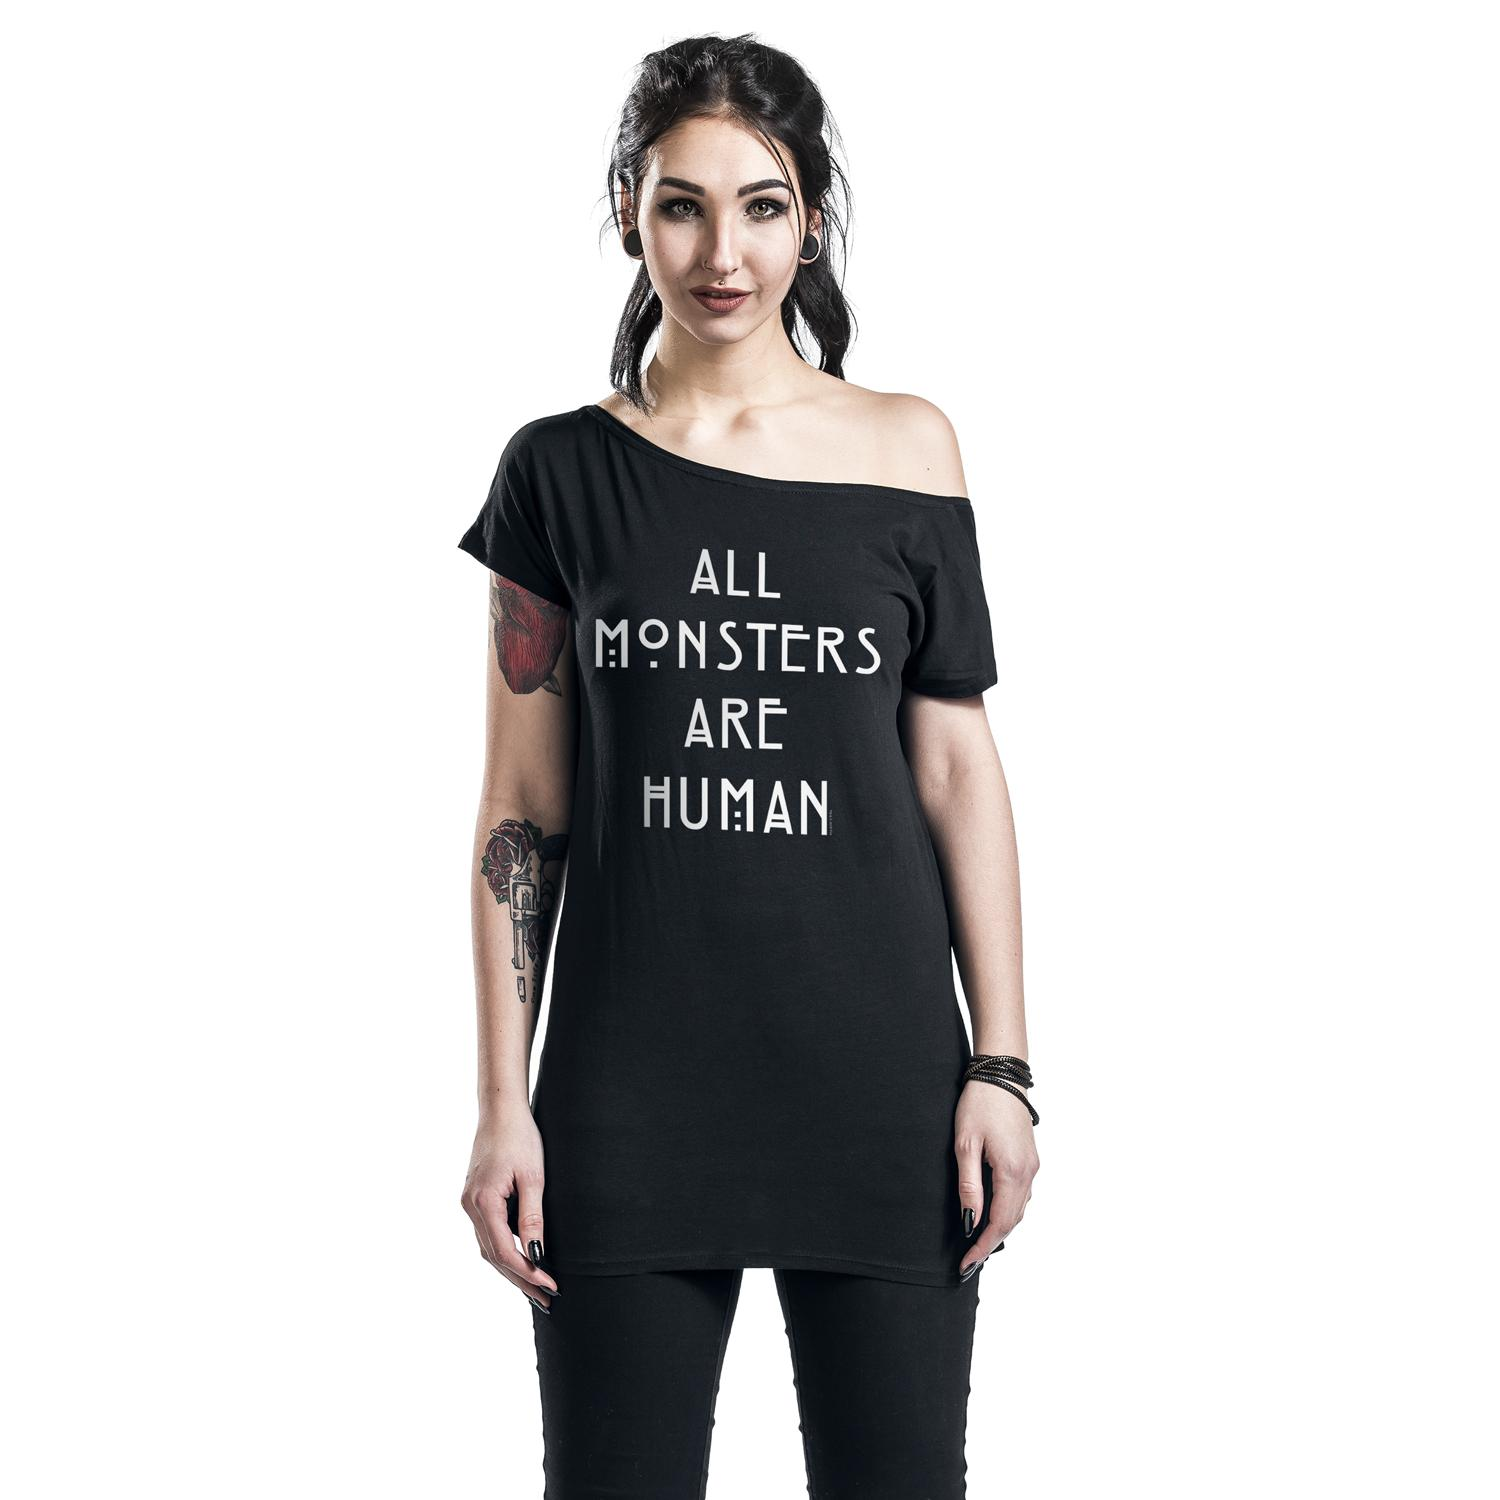 All Monsters Are Human T-shirt Design woman